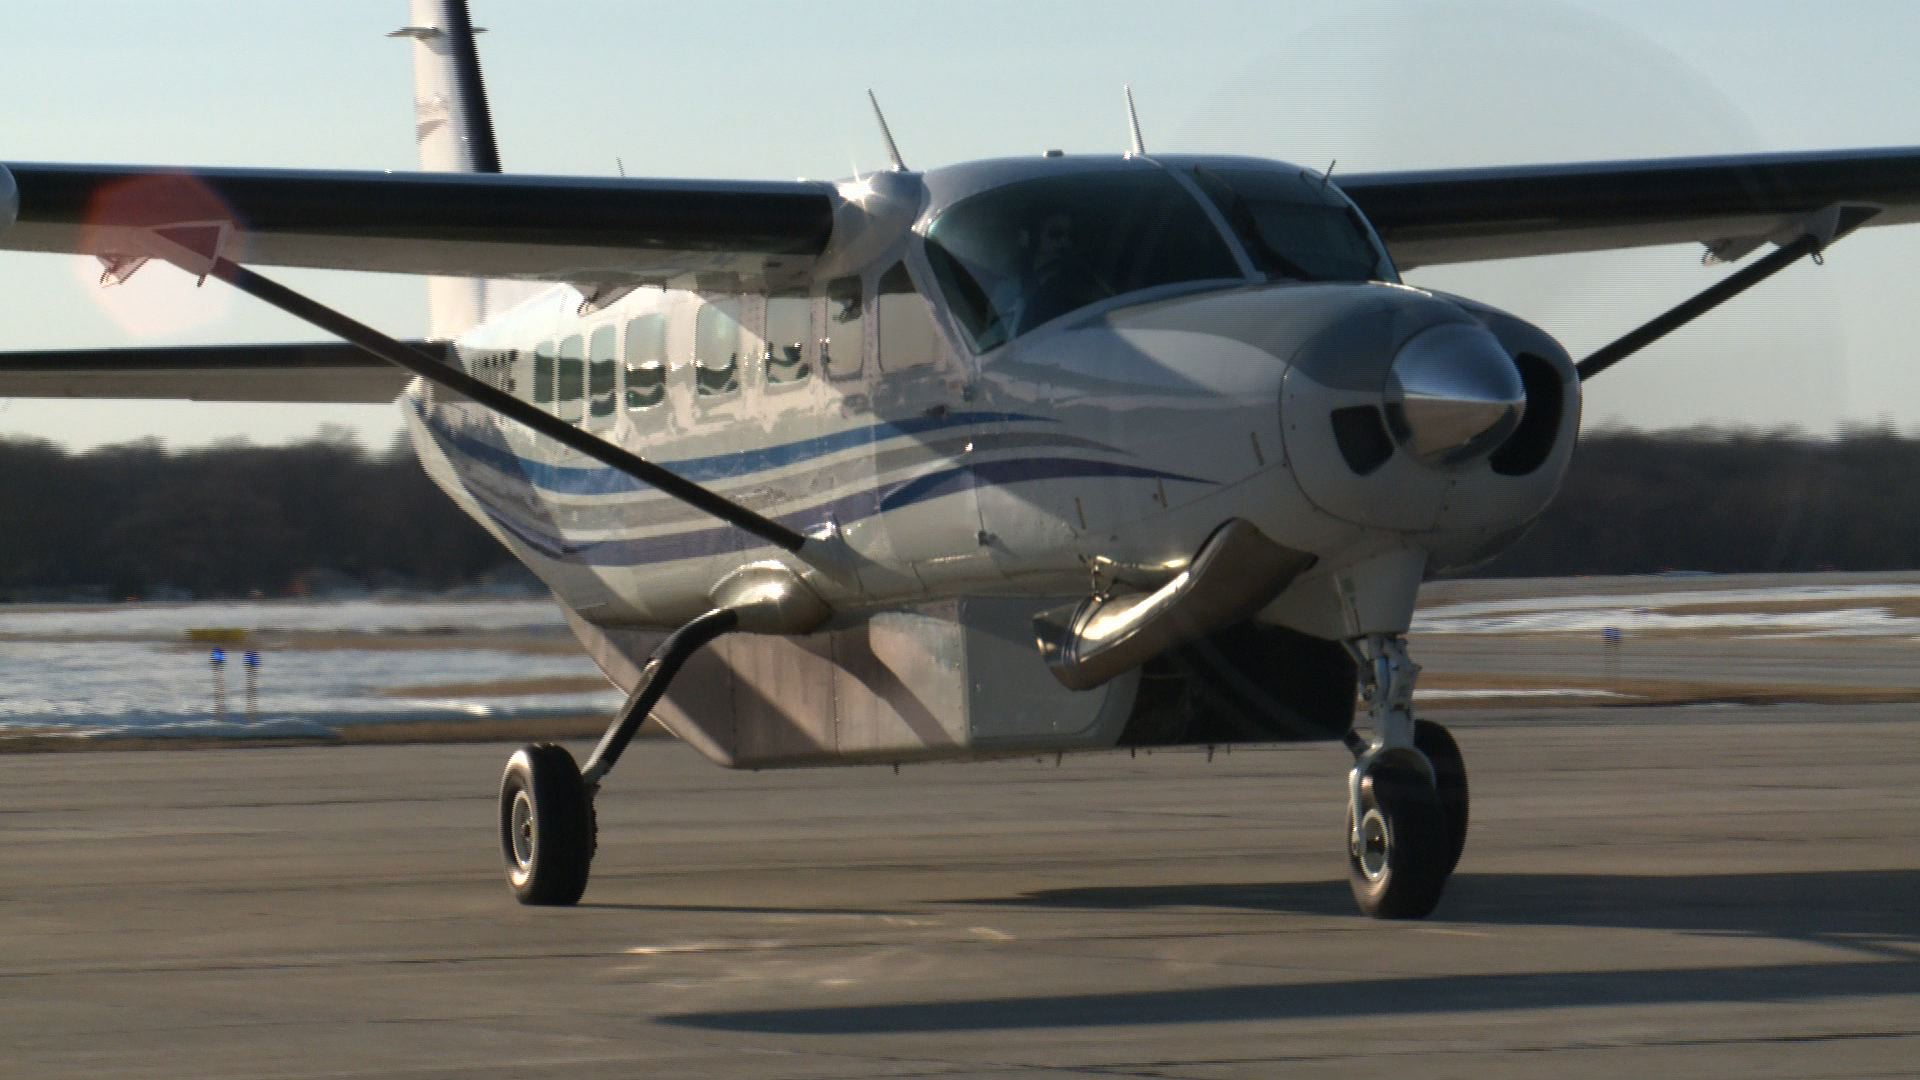 An Air Choice One flight lands at Fort Dodge Airport ( Roger Riley WHO-HD photo)